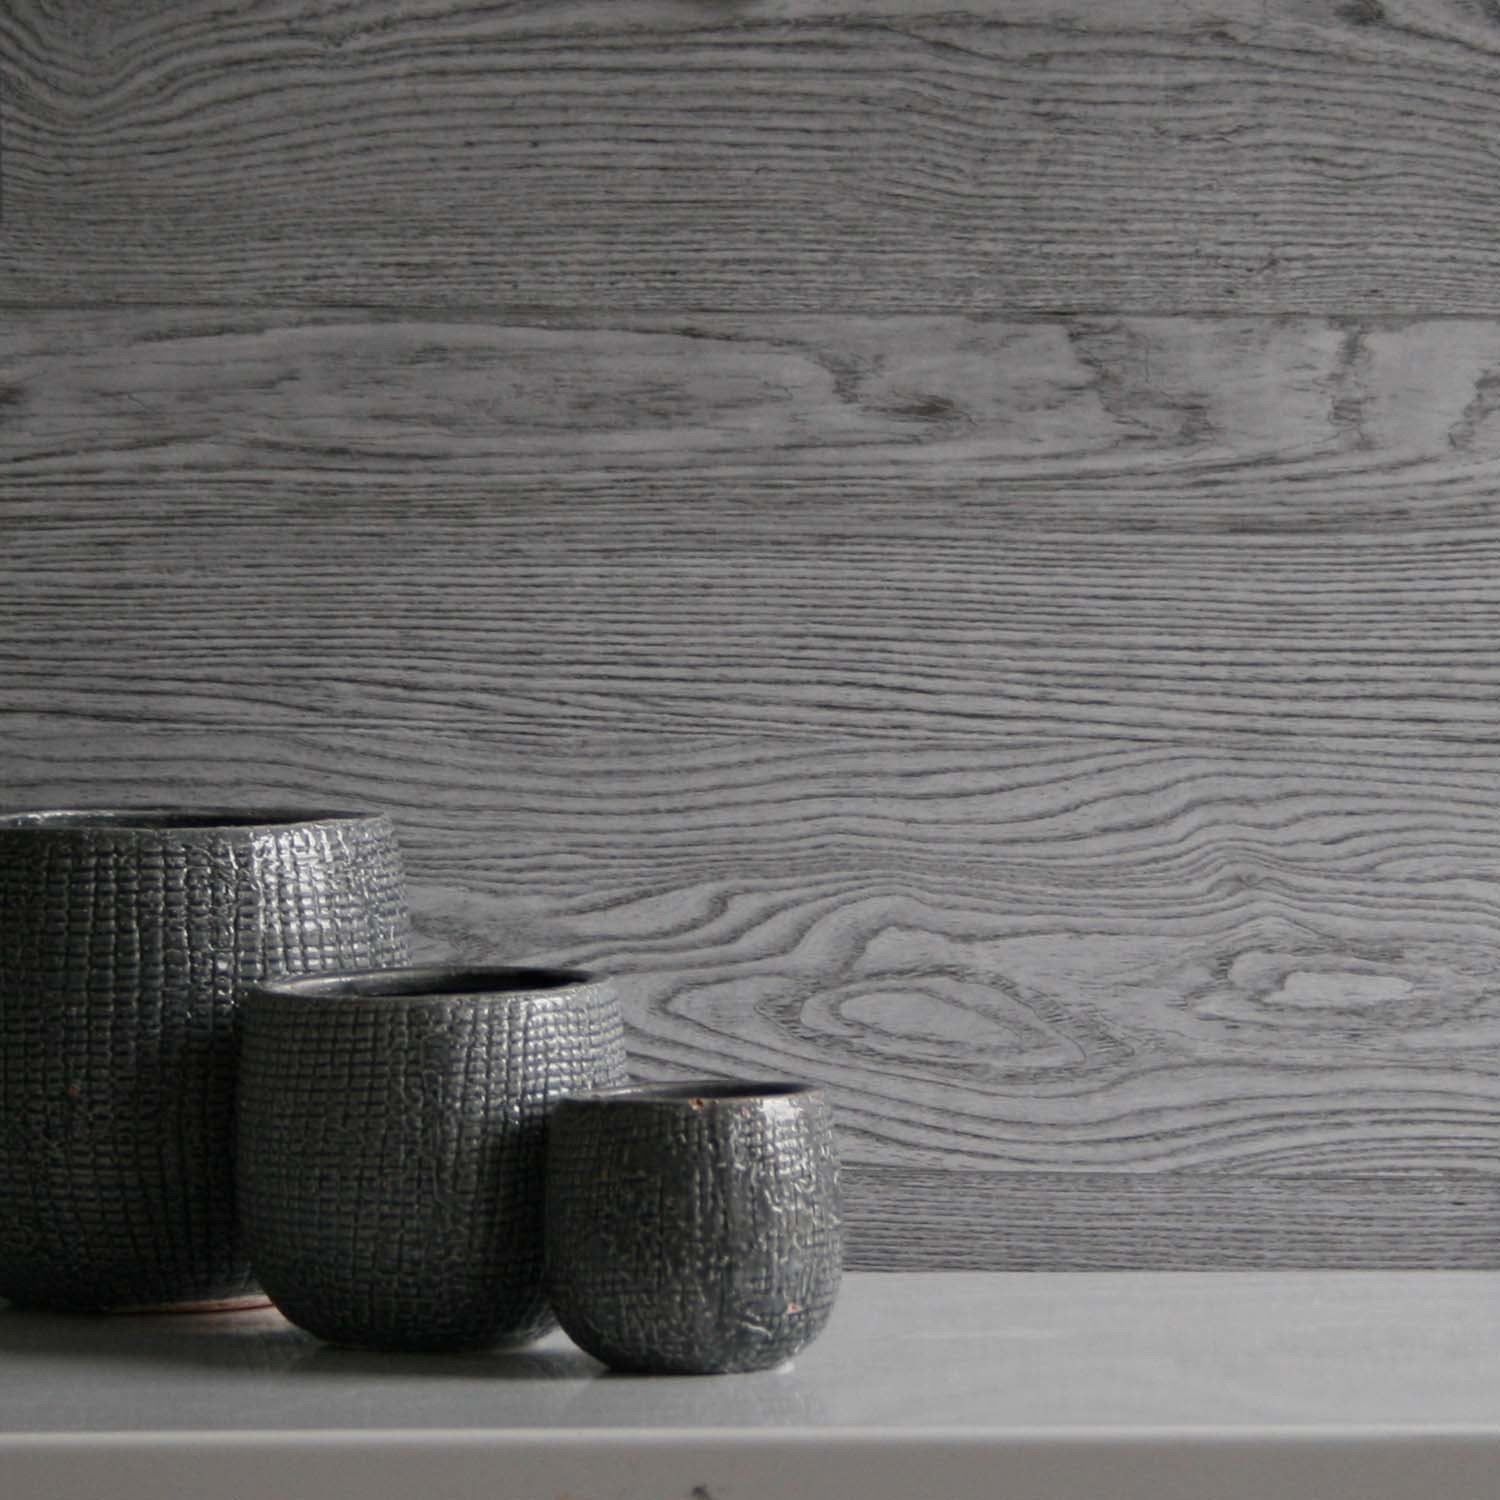 Amazingly Realistic Wide Plank Wood Painted Effect Wallpaper in GreyThis product is so now! It is an amazingly realistic wood effect wallpaper! It can be used throughout the home with dramatic effects. It is a textured wipeable wallpaper which looks fab!h:10m x w:52cm